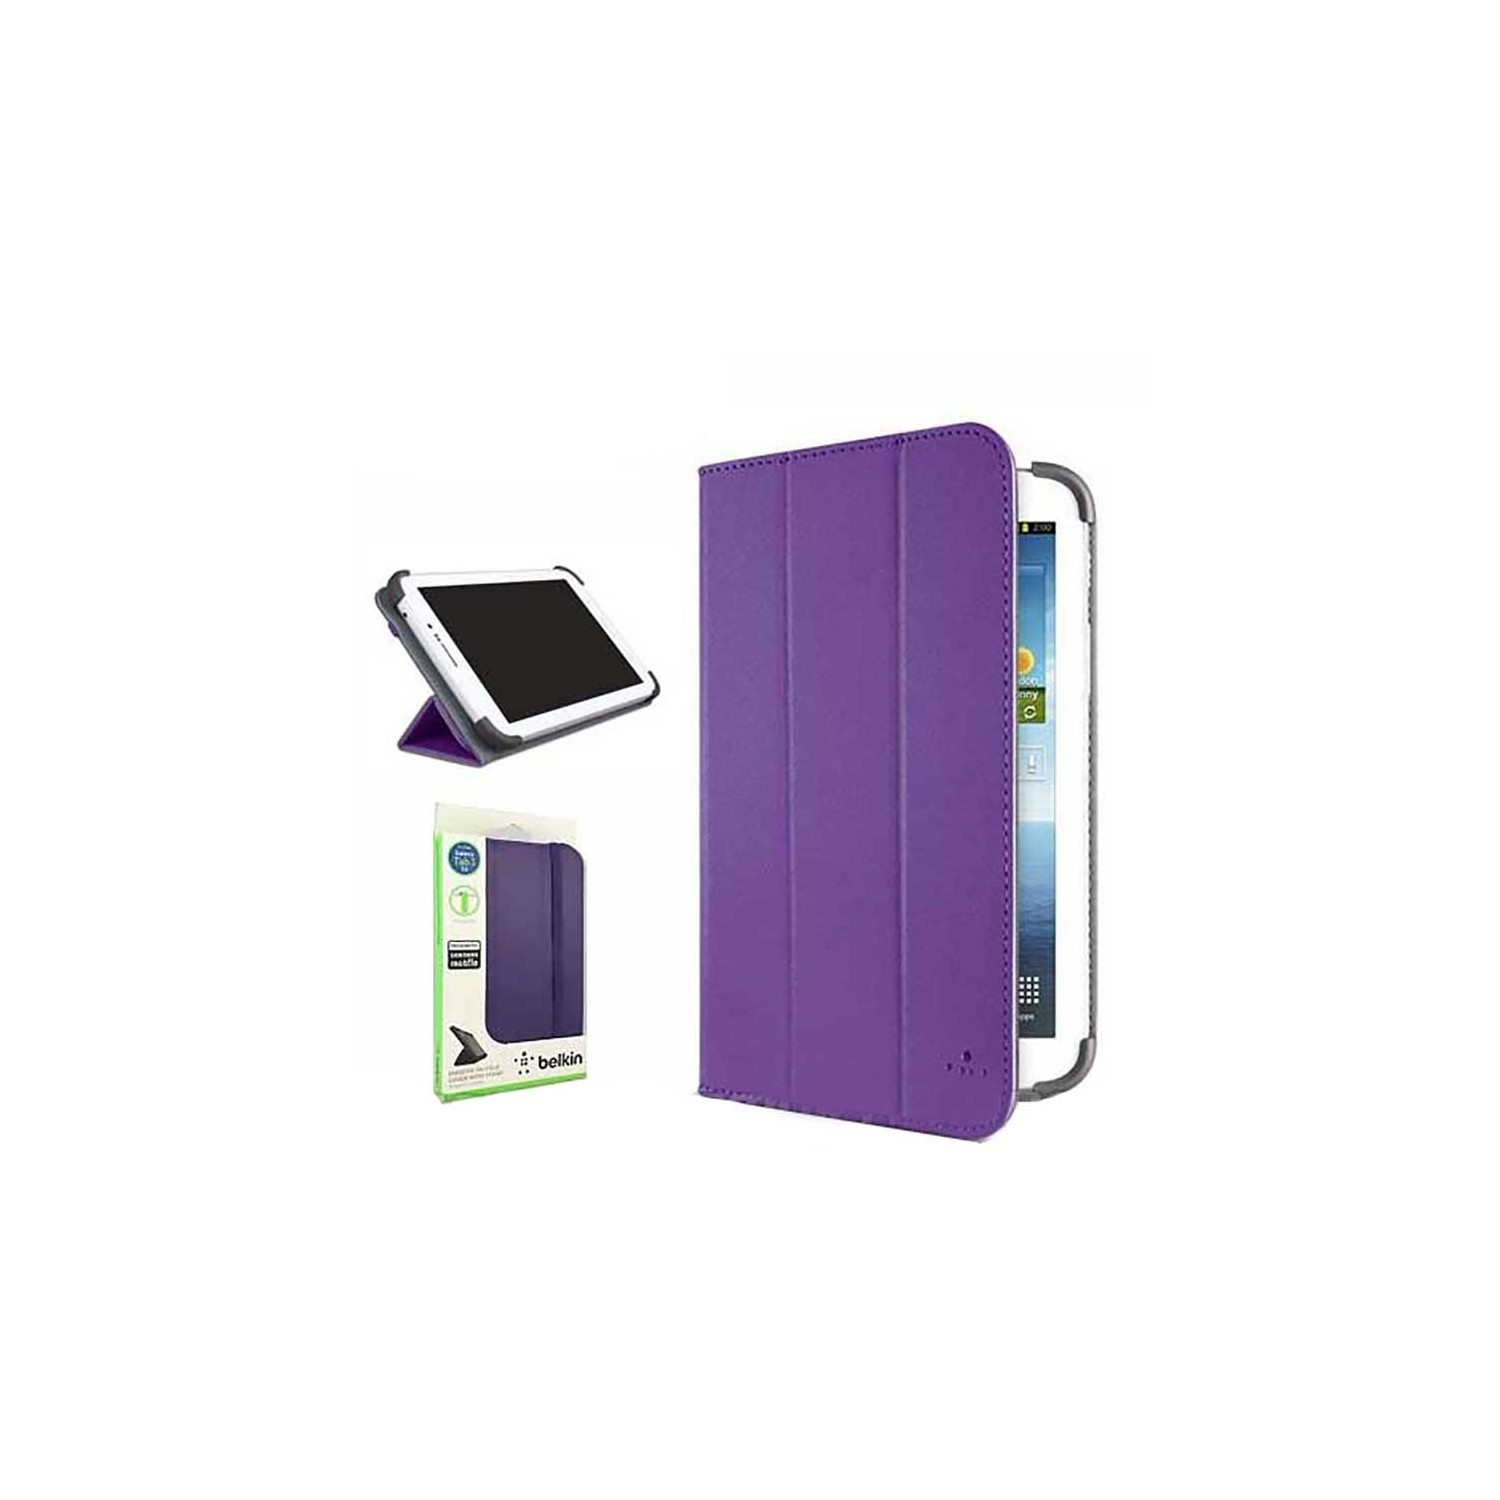 Case - Belkin Smooth Tri-Fold Cover with Stand for Samsung Galaxy Tab 3 7.0 - Purple